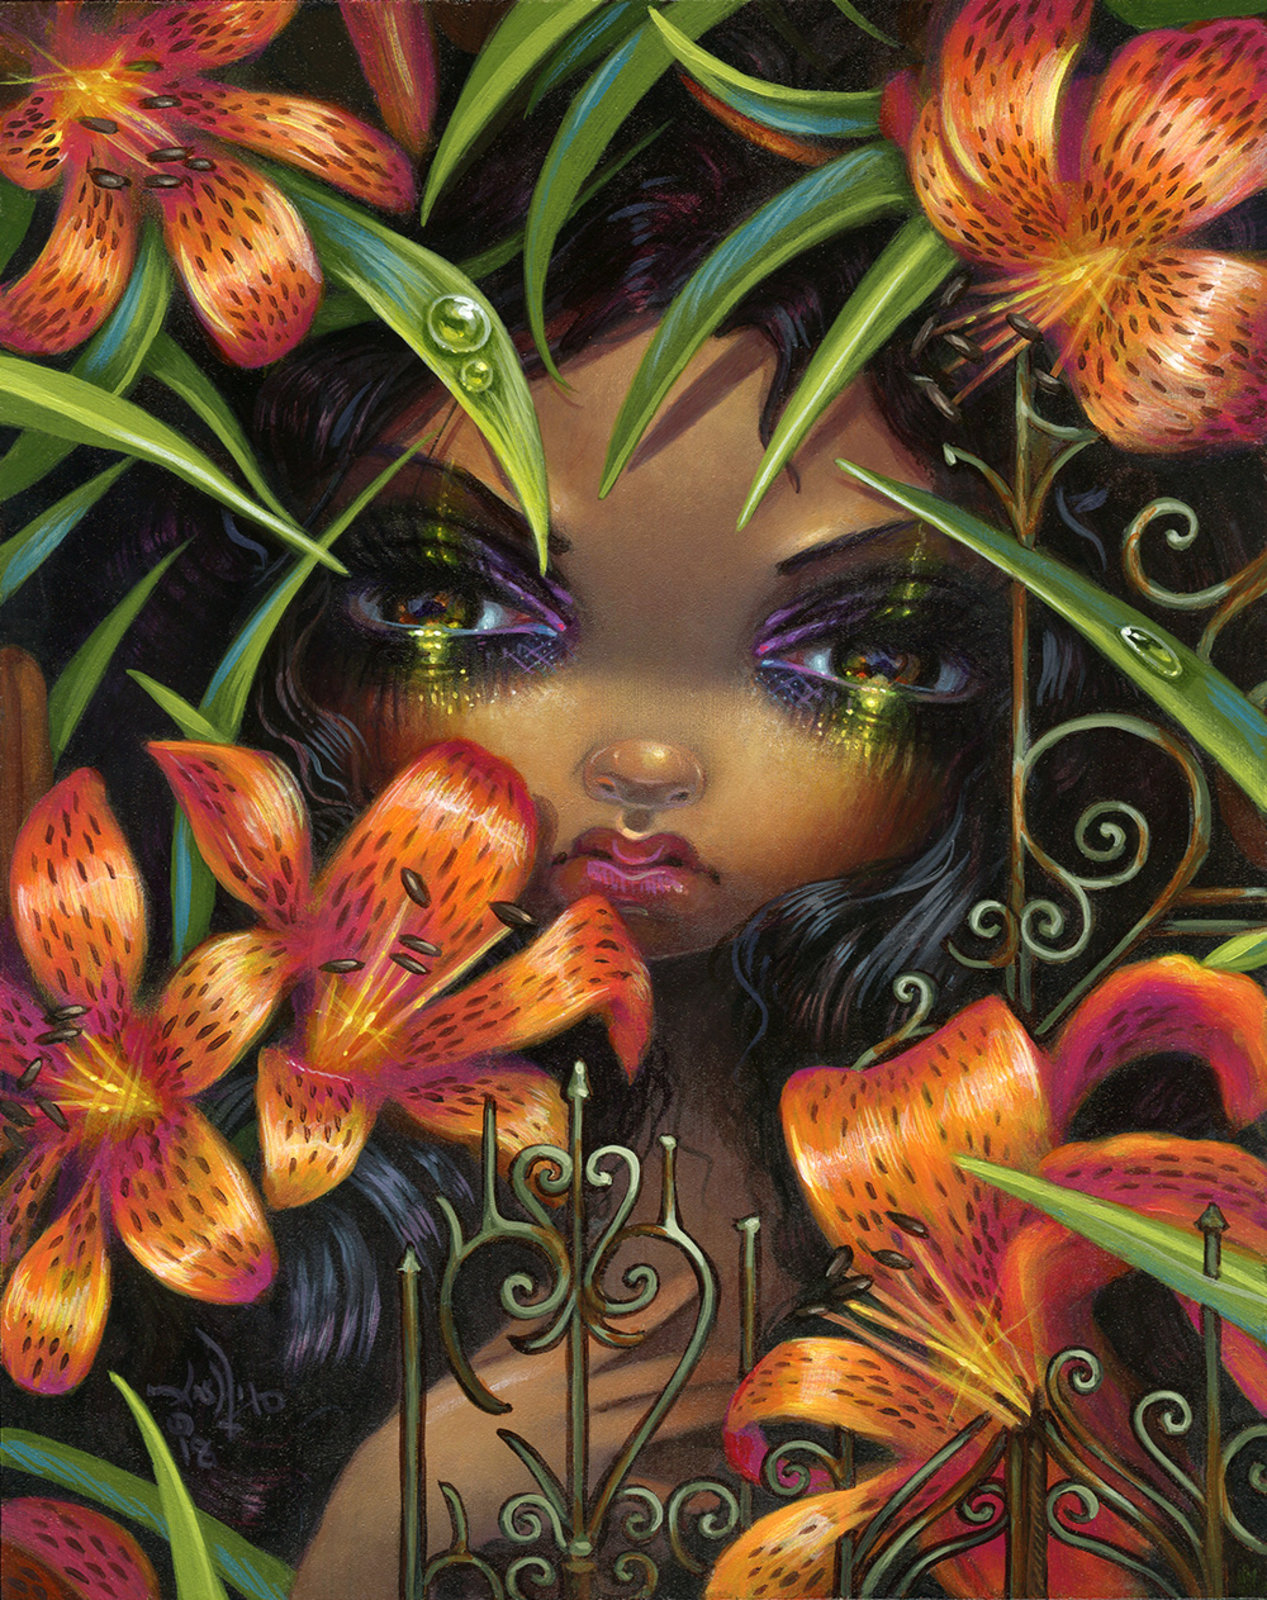 Corey helford gallery shows show detail jasmine becket griffith magical thinking the language of flowers v tiger lily izmirmasajfo